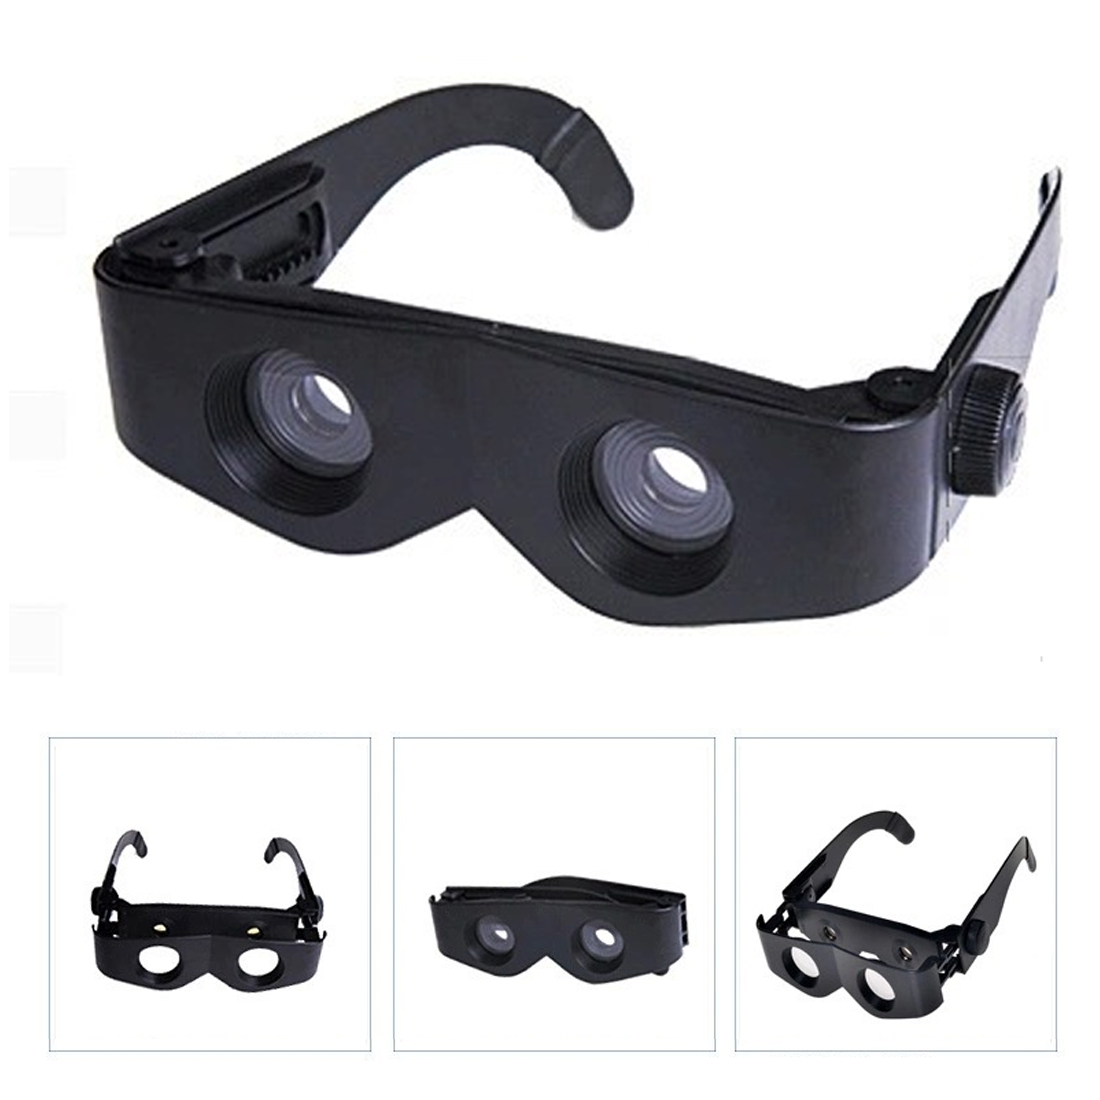 Magnifier Binoculars Telescope Portable Glasses Style For Fishing Hiking Concert